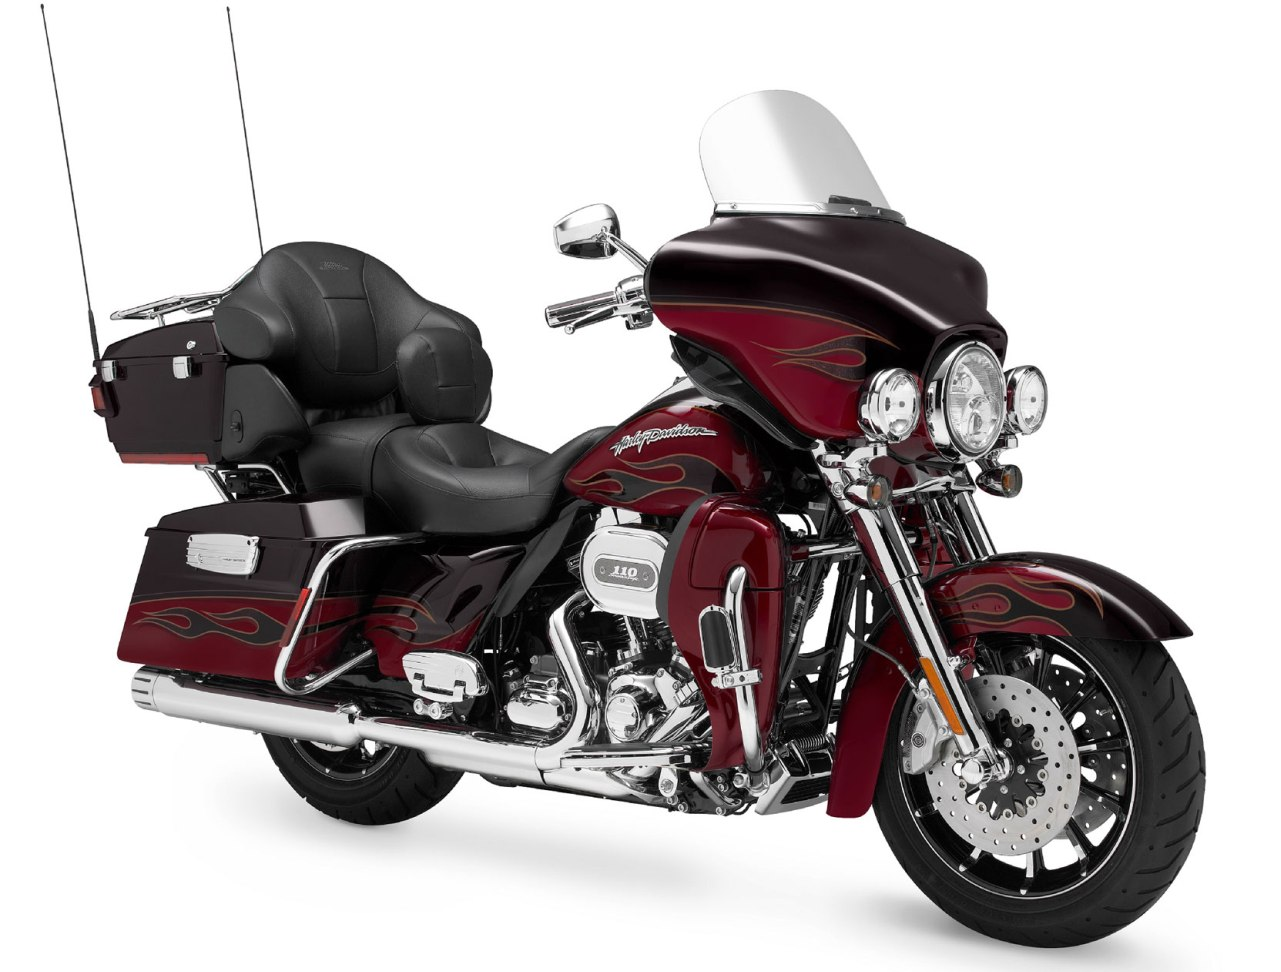 harley davidson cvo classic electra glide reviews, price